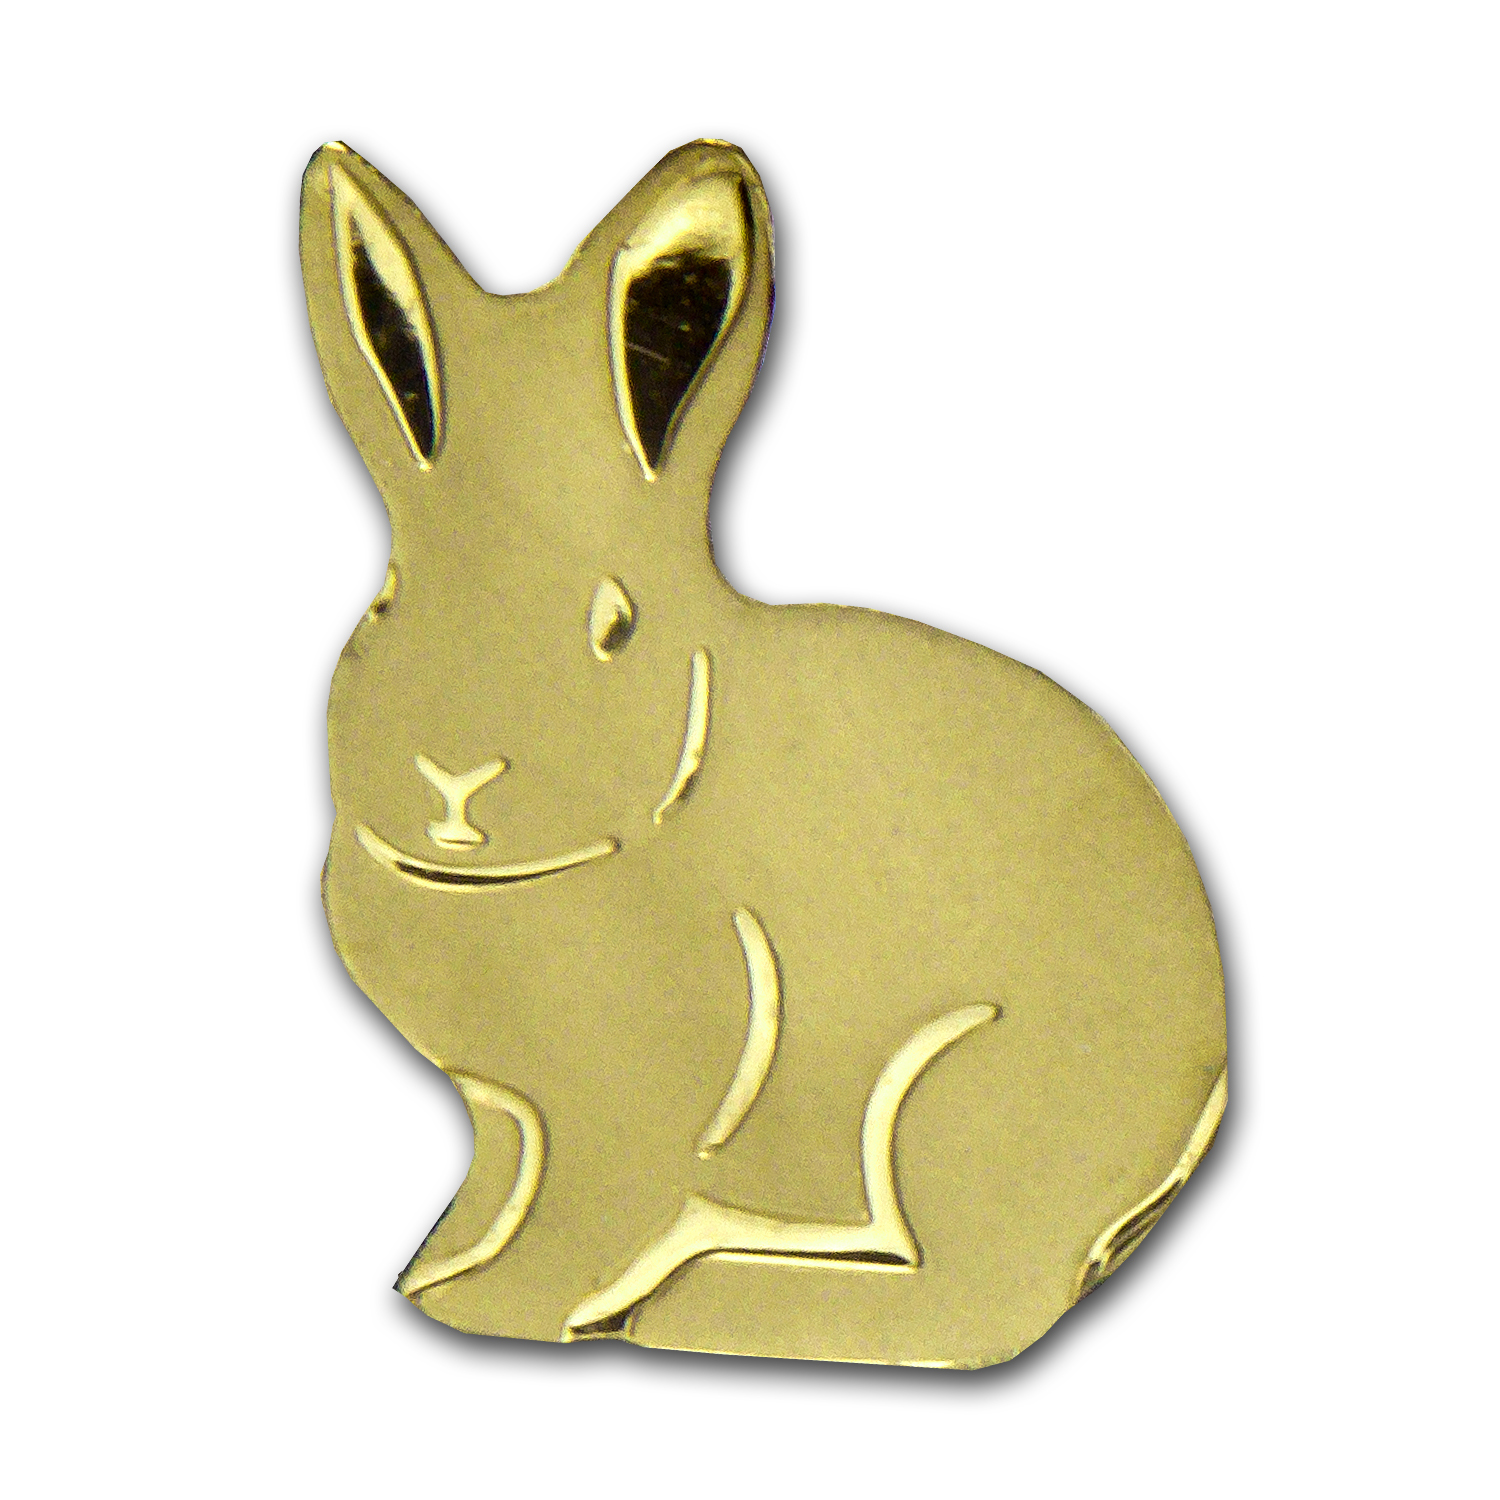 Palau 1/2 gram Gold $1 Golden Rabbit Coin